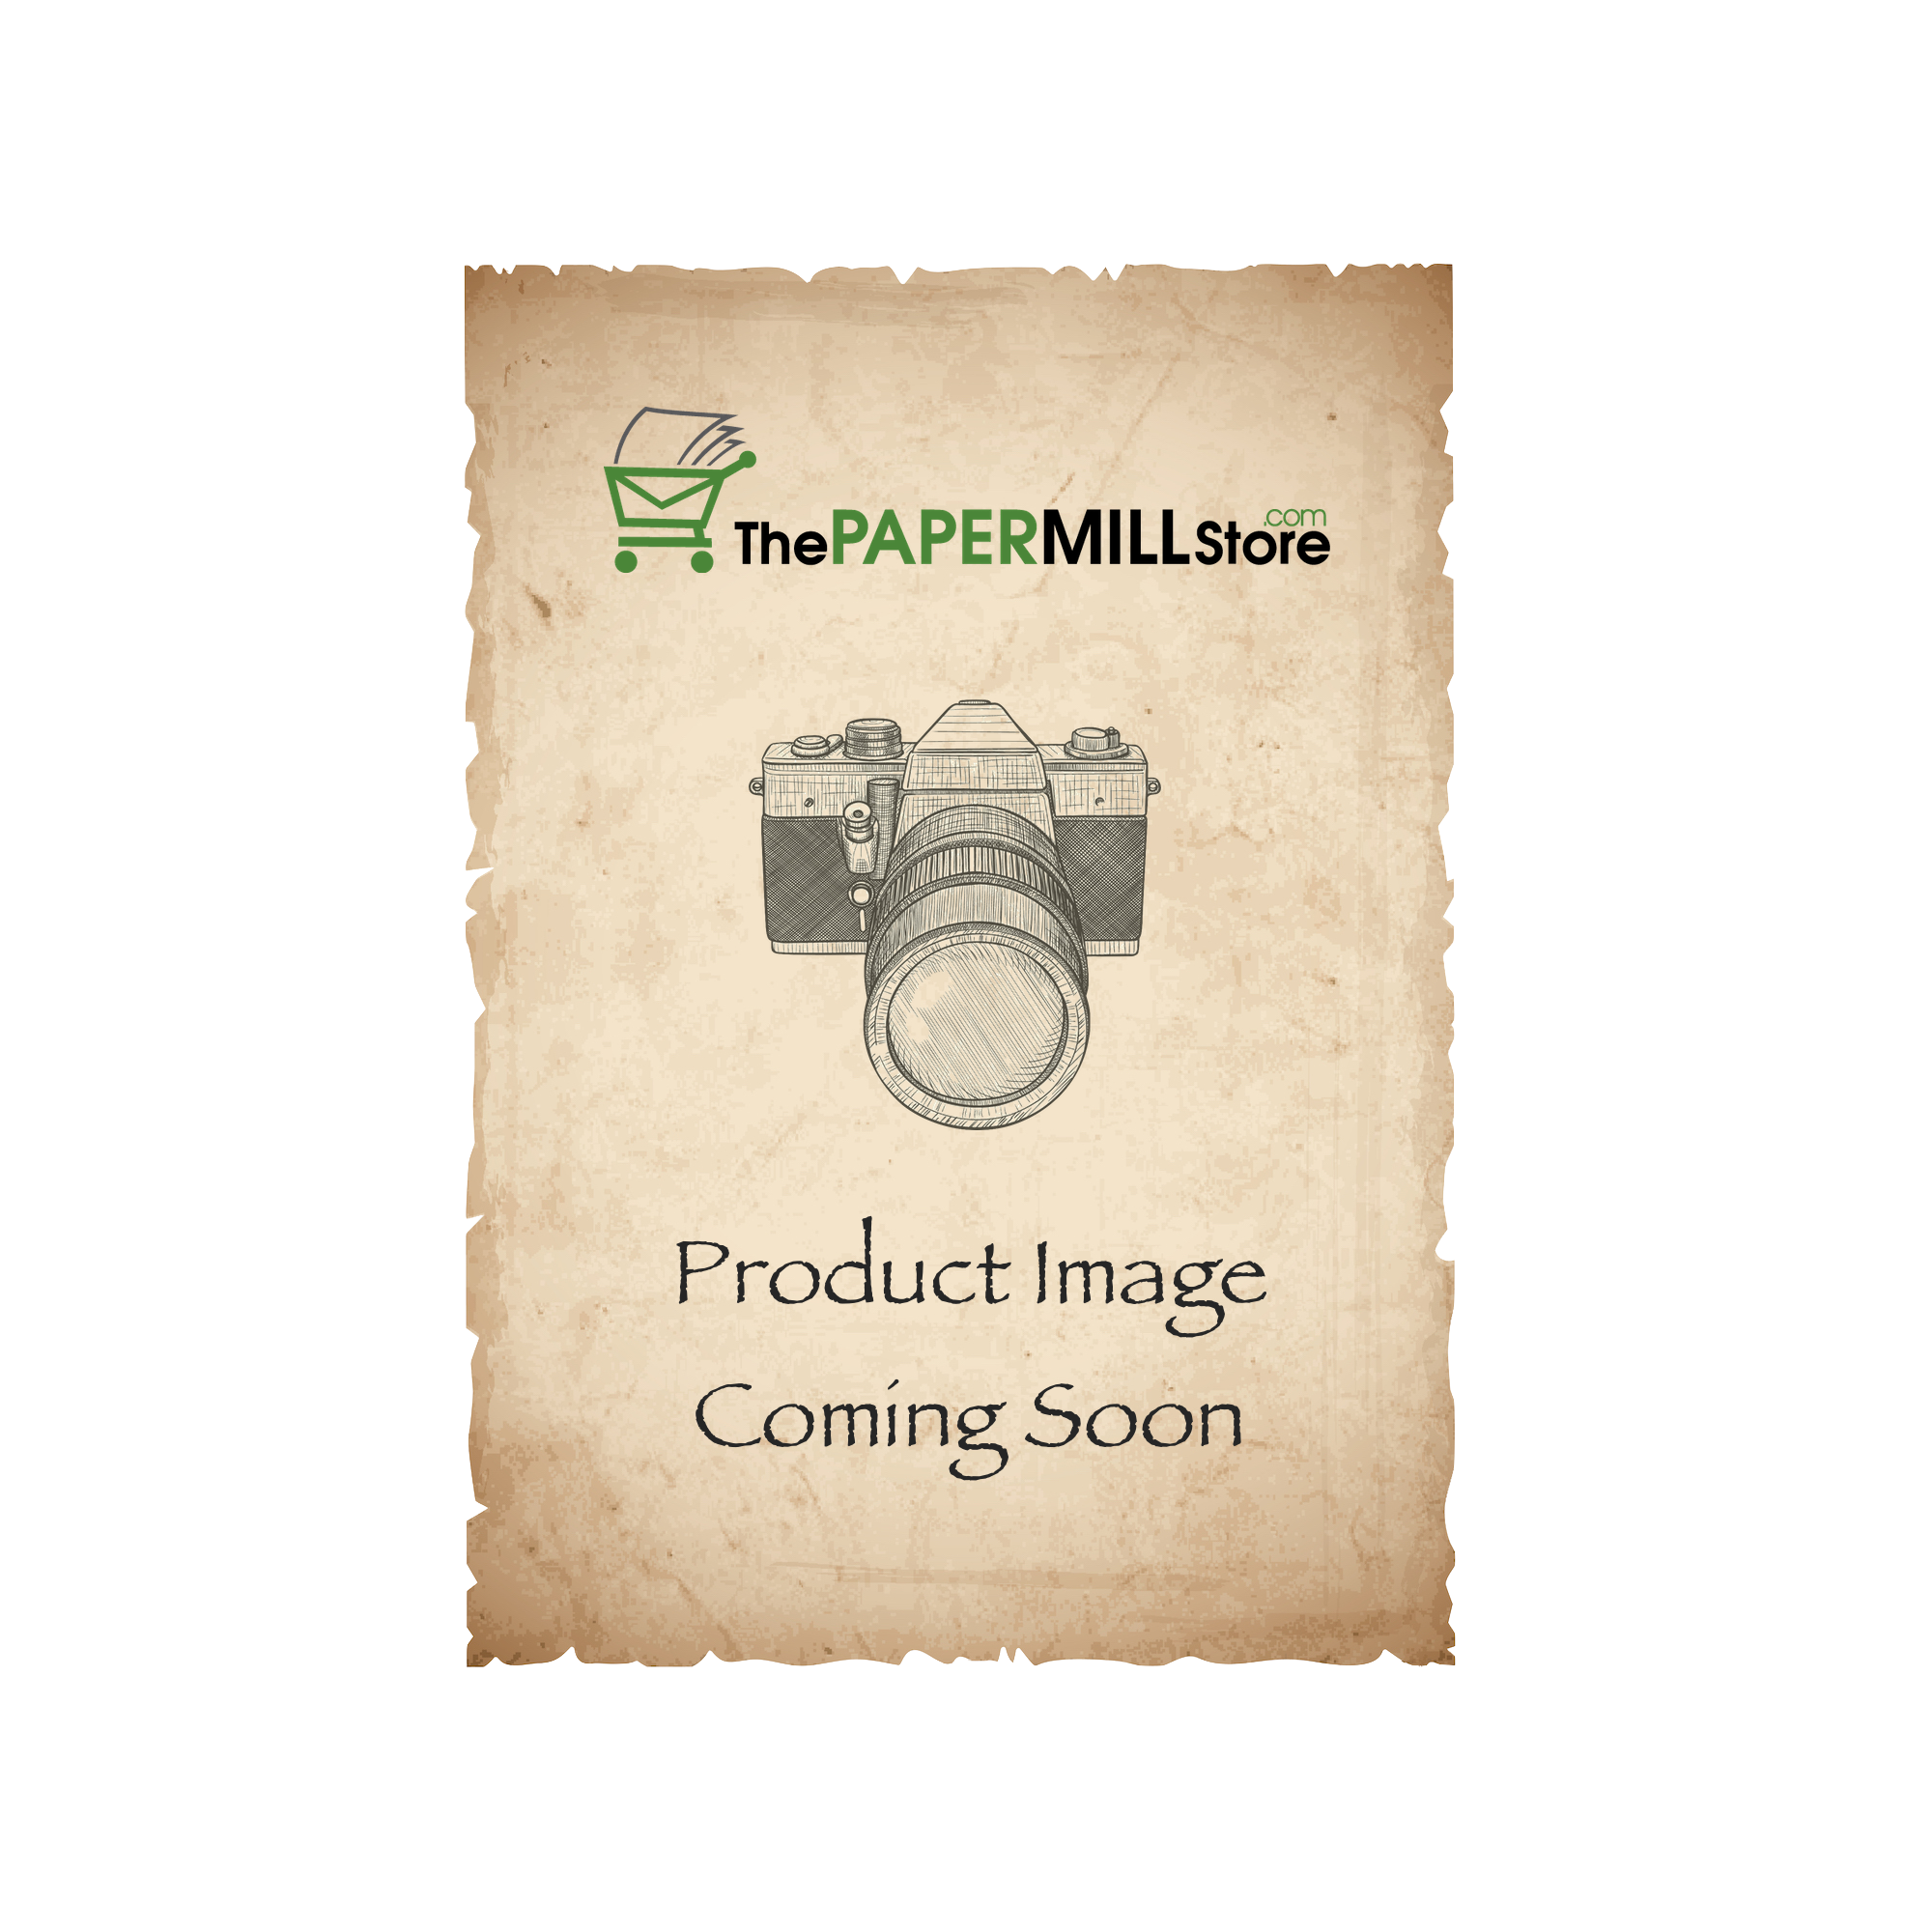 CLASSIC Laid Classic Natural White Paper - 8 1/2 x 11 in 24 lb Writing Imaging Laid Watermarked 500 per Ream